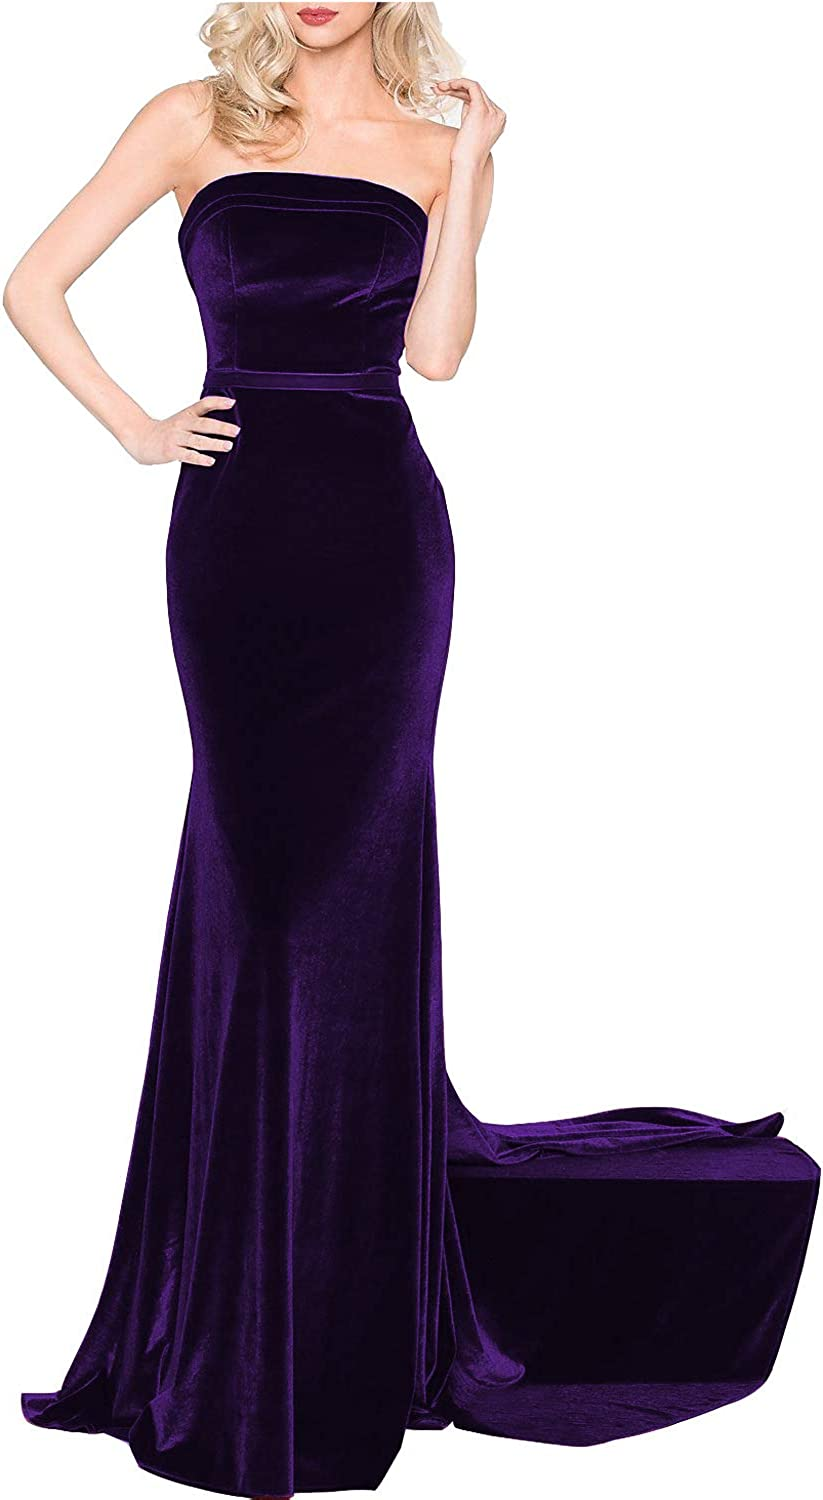 CCBubble Women Mermaid Velvet Prom Dresses Strapless Long Evening Formal Gowns